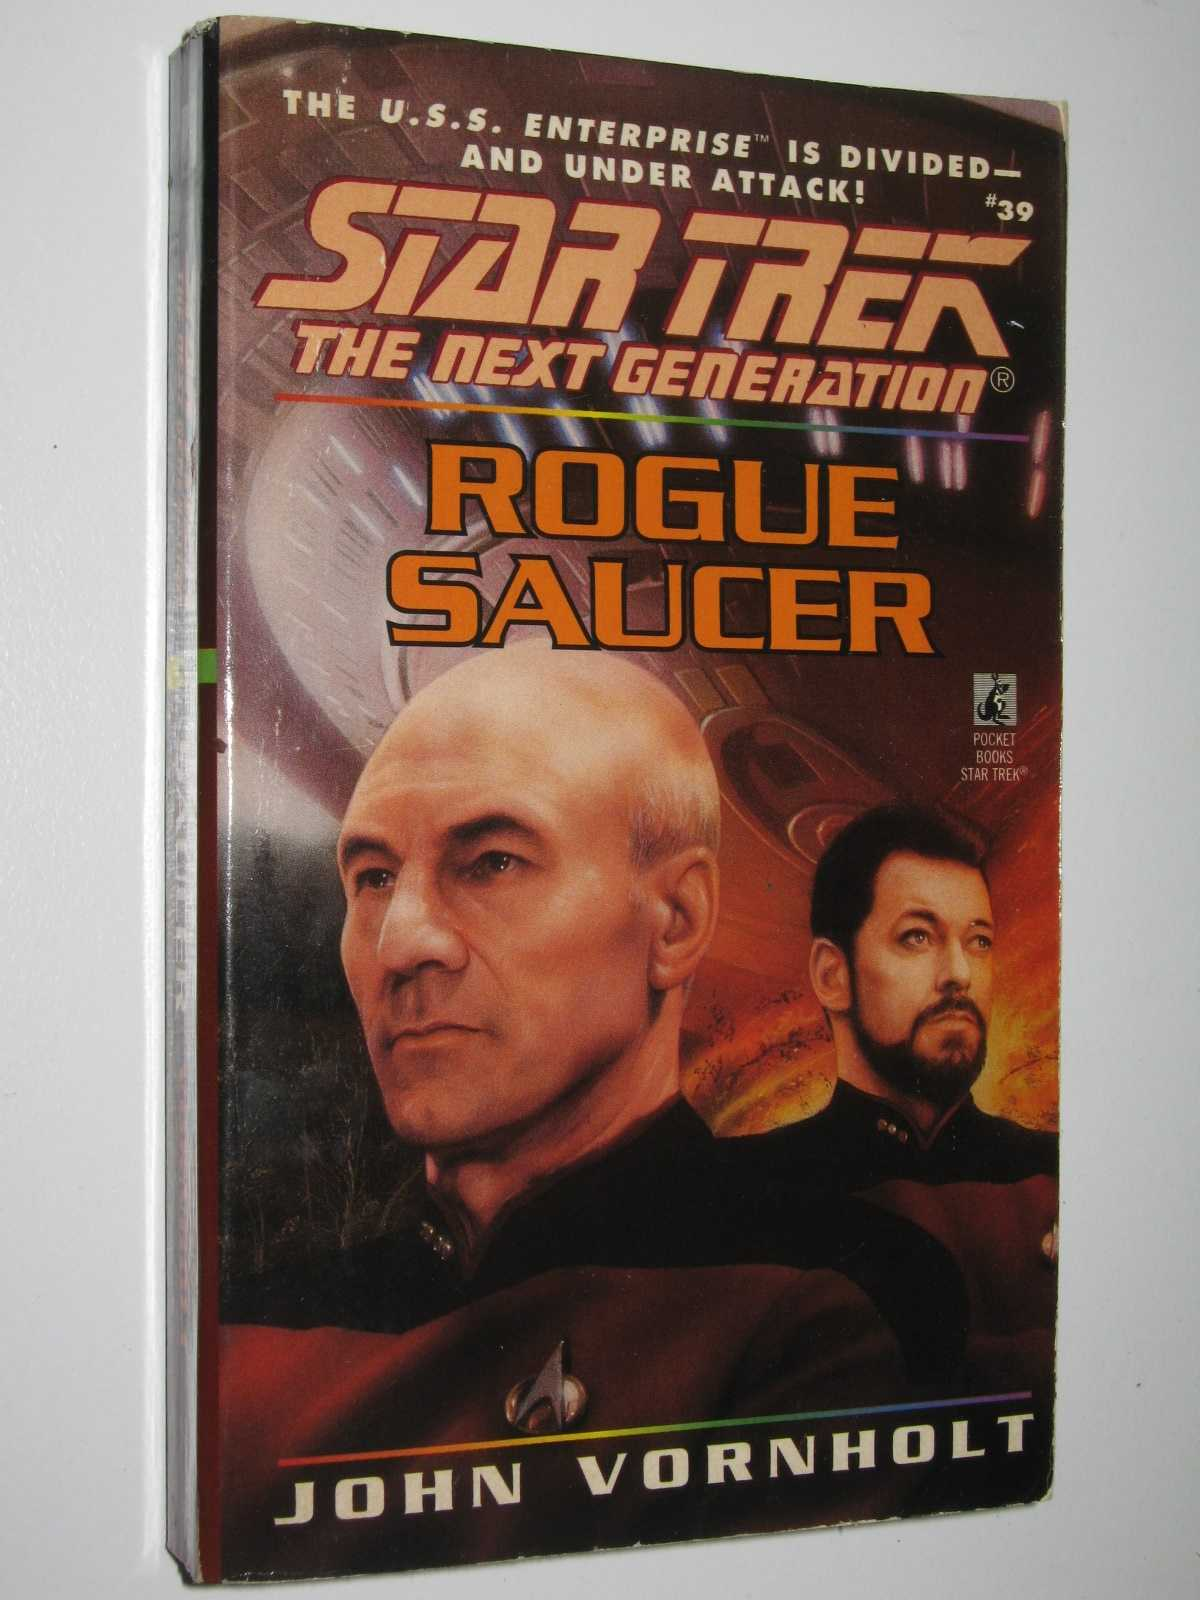 Image for Rogue Saucer - STAR TREK: The Next Generation Series #39